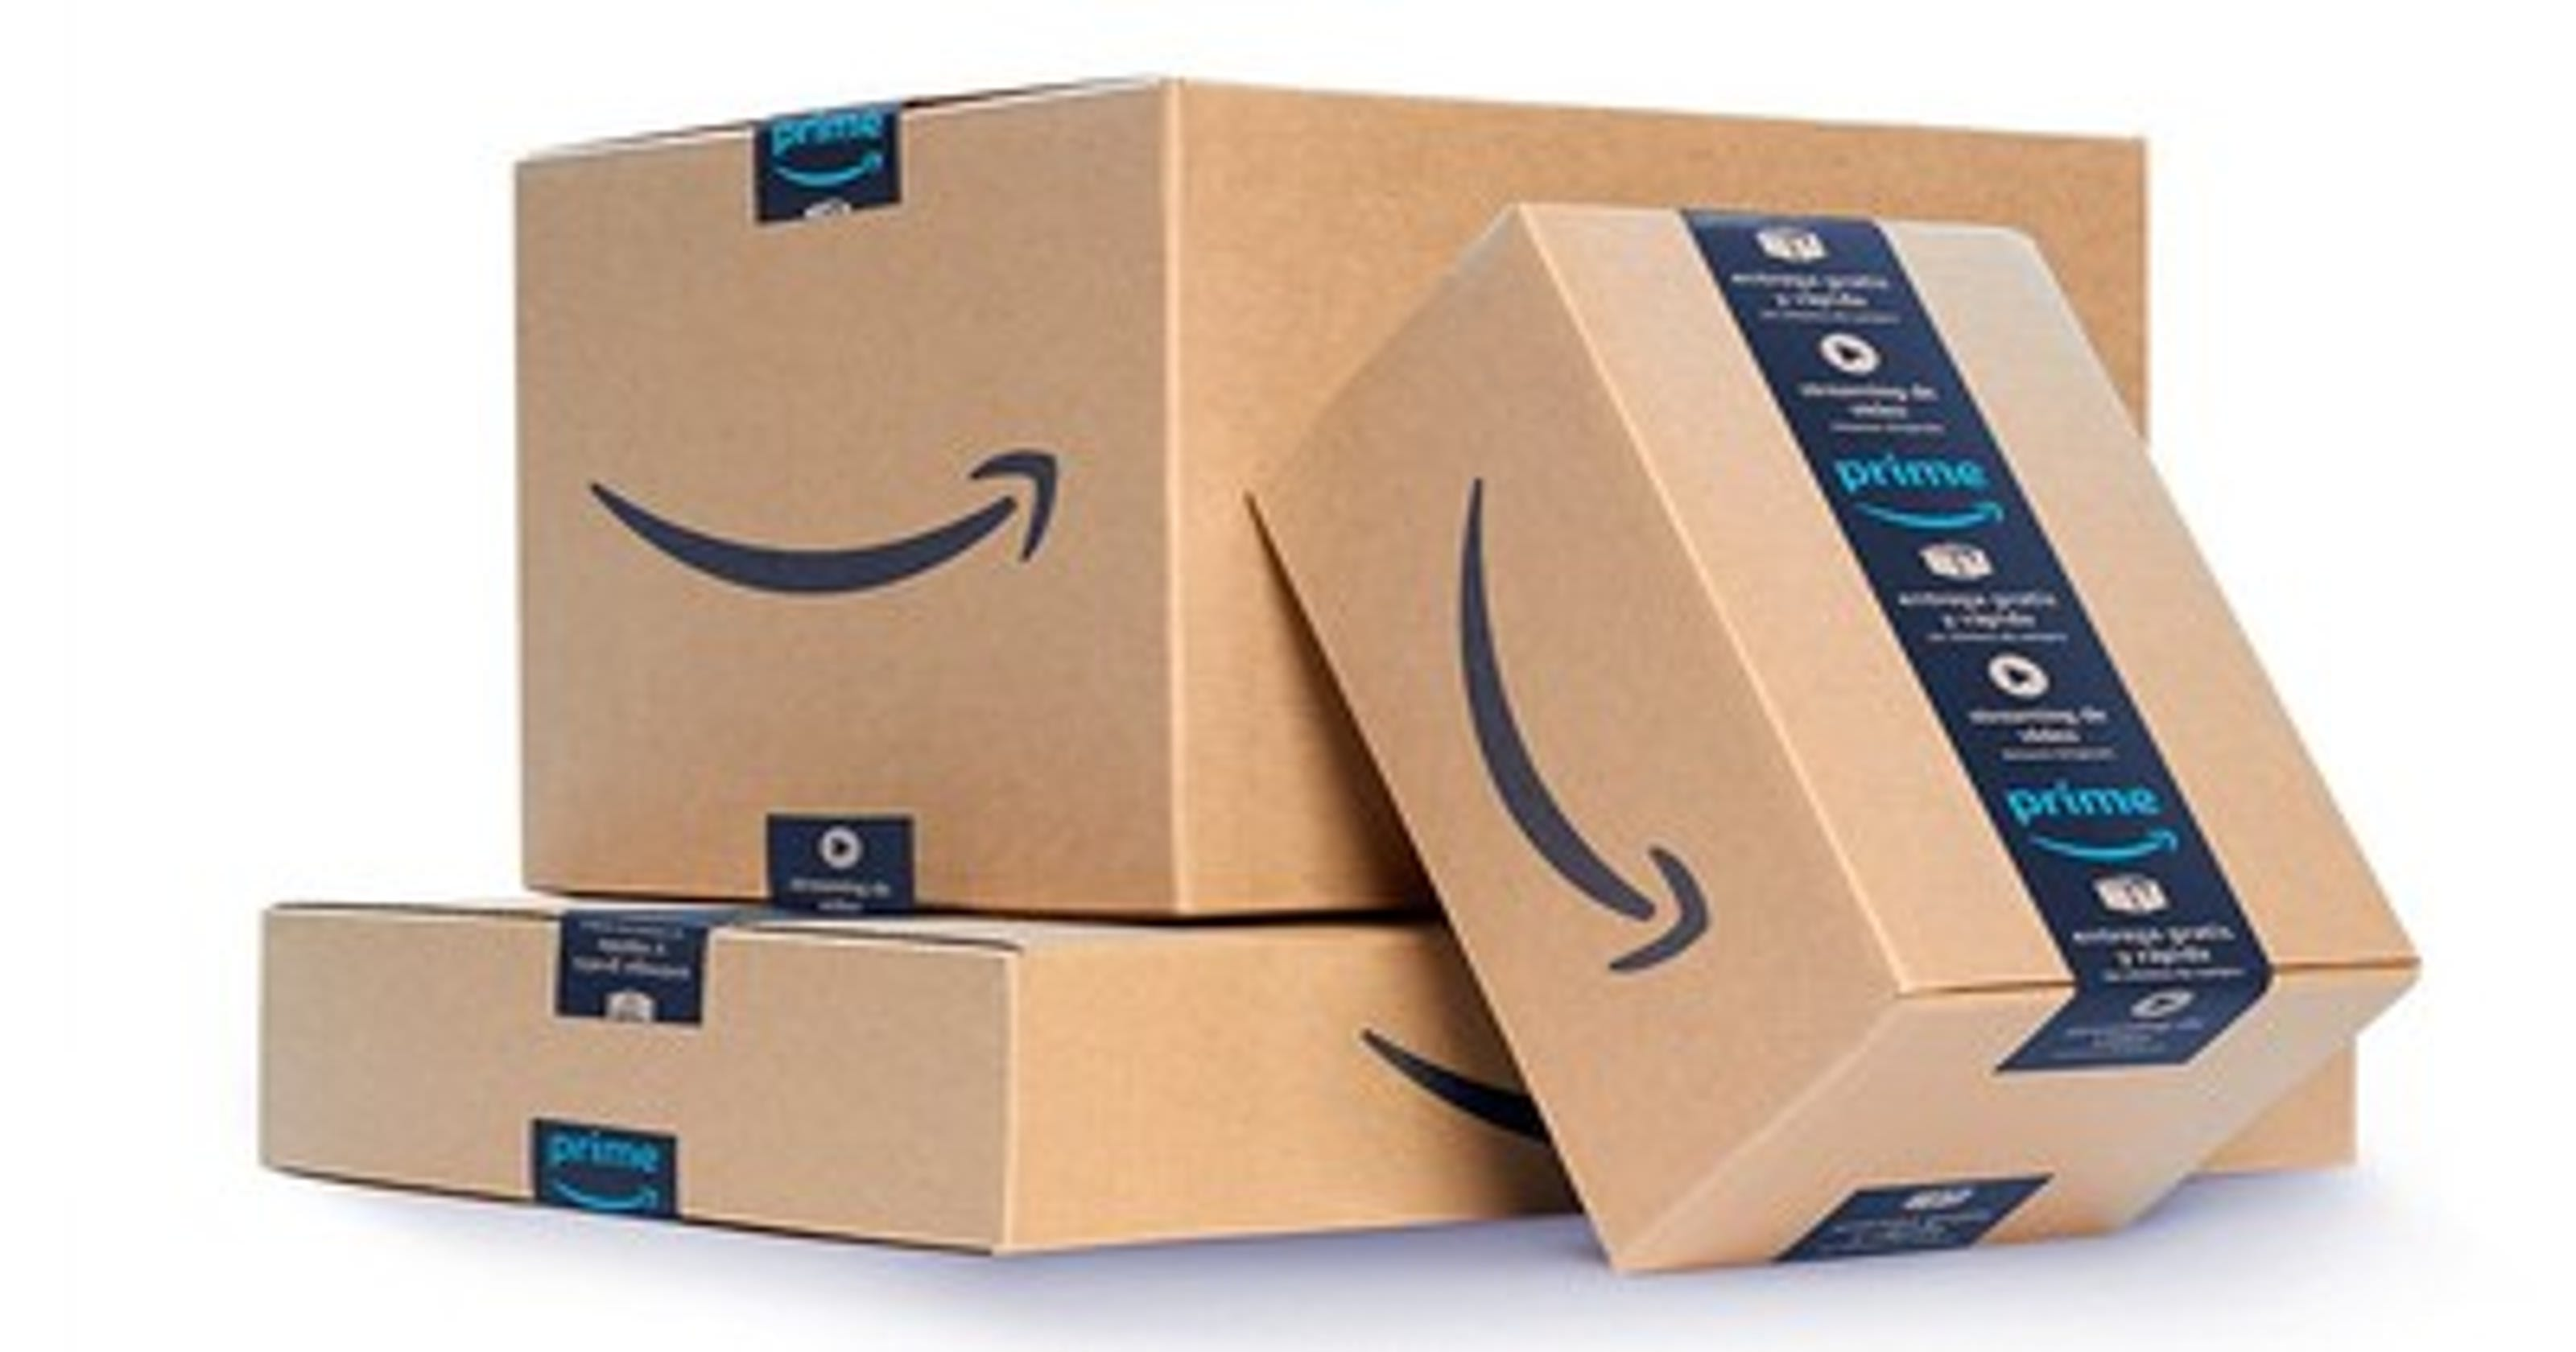 Amazon Prime is getting a price hike  These 10 ways let you